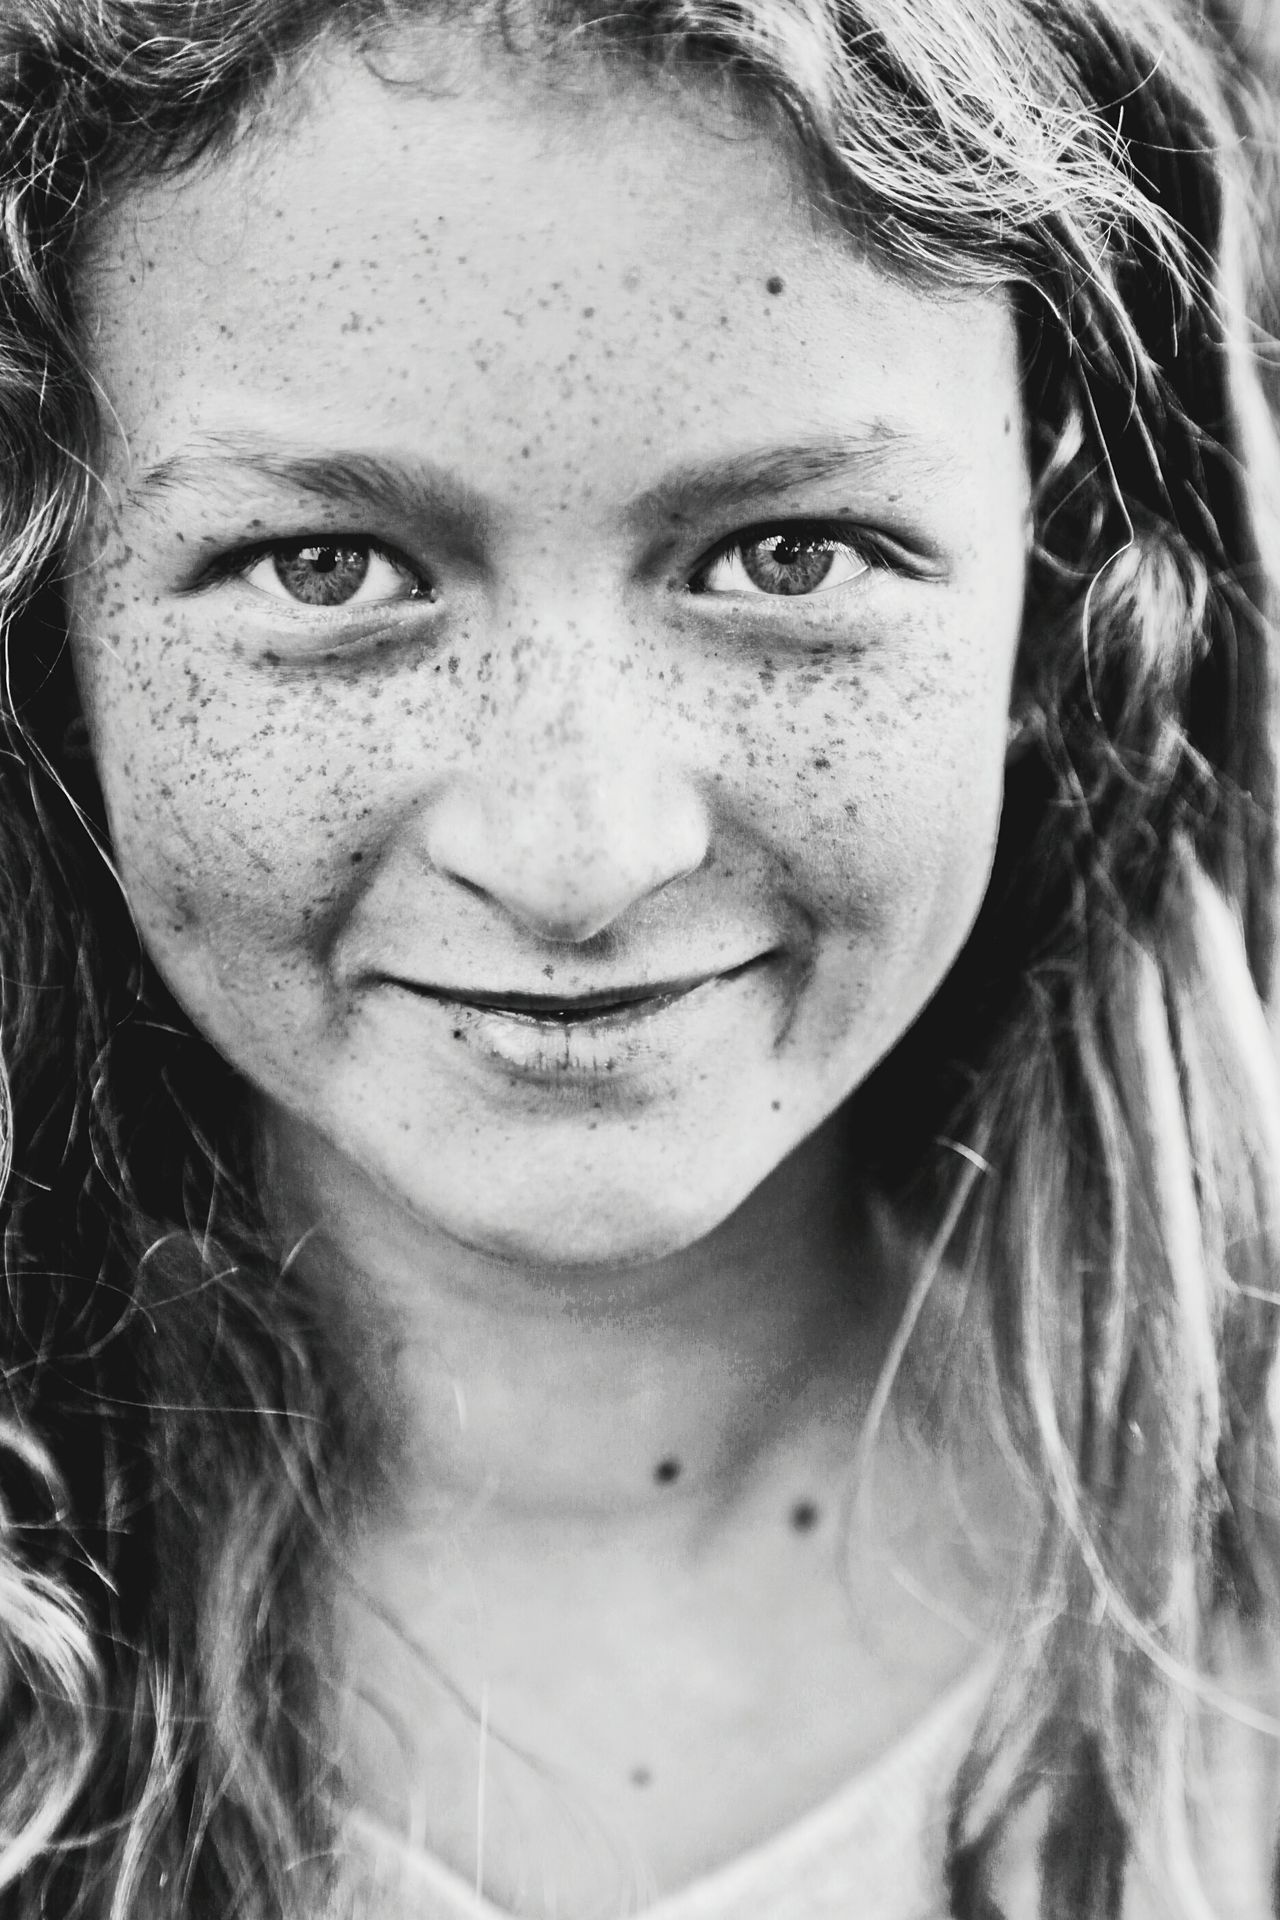 Portrait Freckle Beauty Youth Beautiful People Real People Freckled Girl Close-up Beautiful Girl Blackandwhite Black & White Black And White Smiling Freckles Teenager Teenage Girls Teen One Girl Only Looking At Camera Lifestyle People Youth Of Today Fashion Eyes Eyes Are Soul Reflection EyeEmNewHere Art Is Everywhere Resist The Portraitist - 2017 EyeEm Awards BYOPaper!